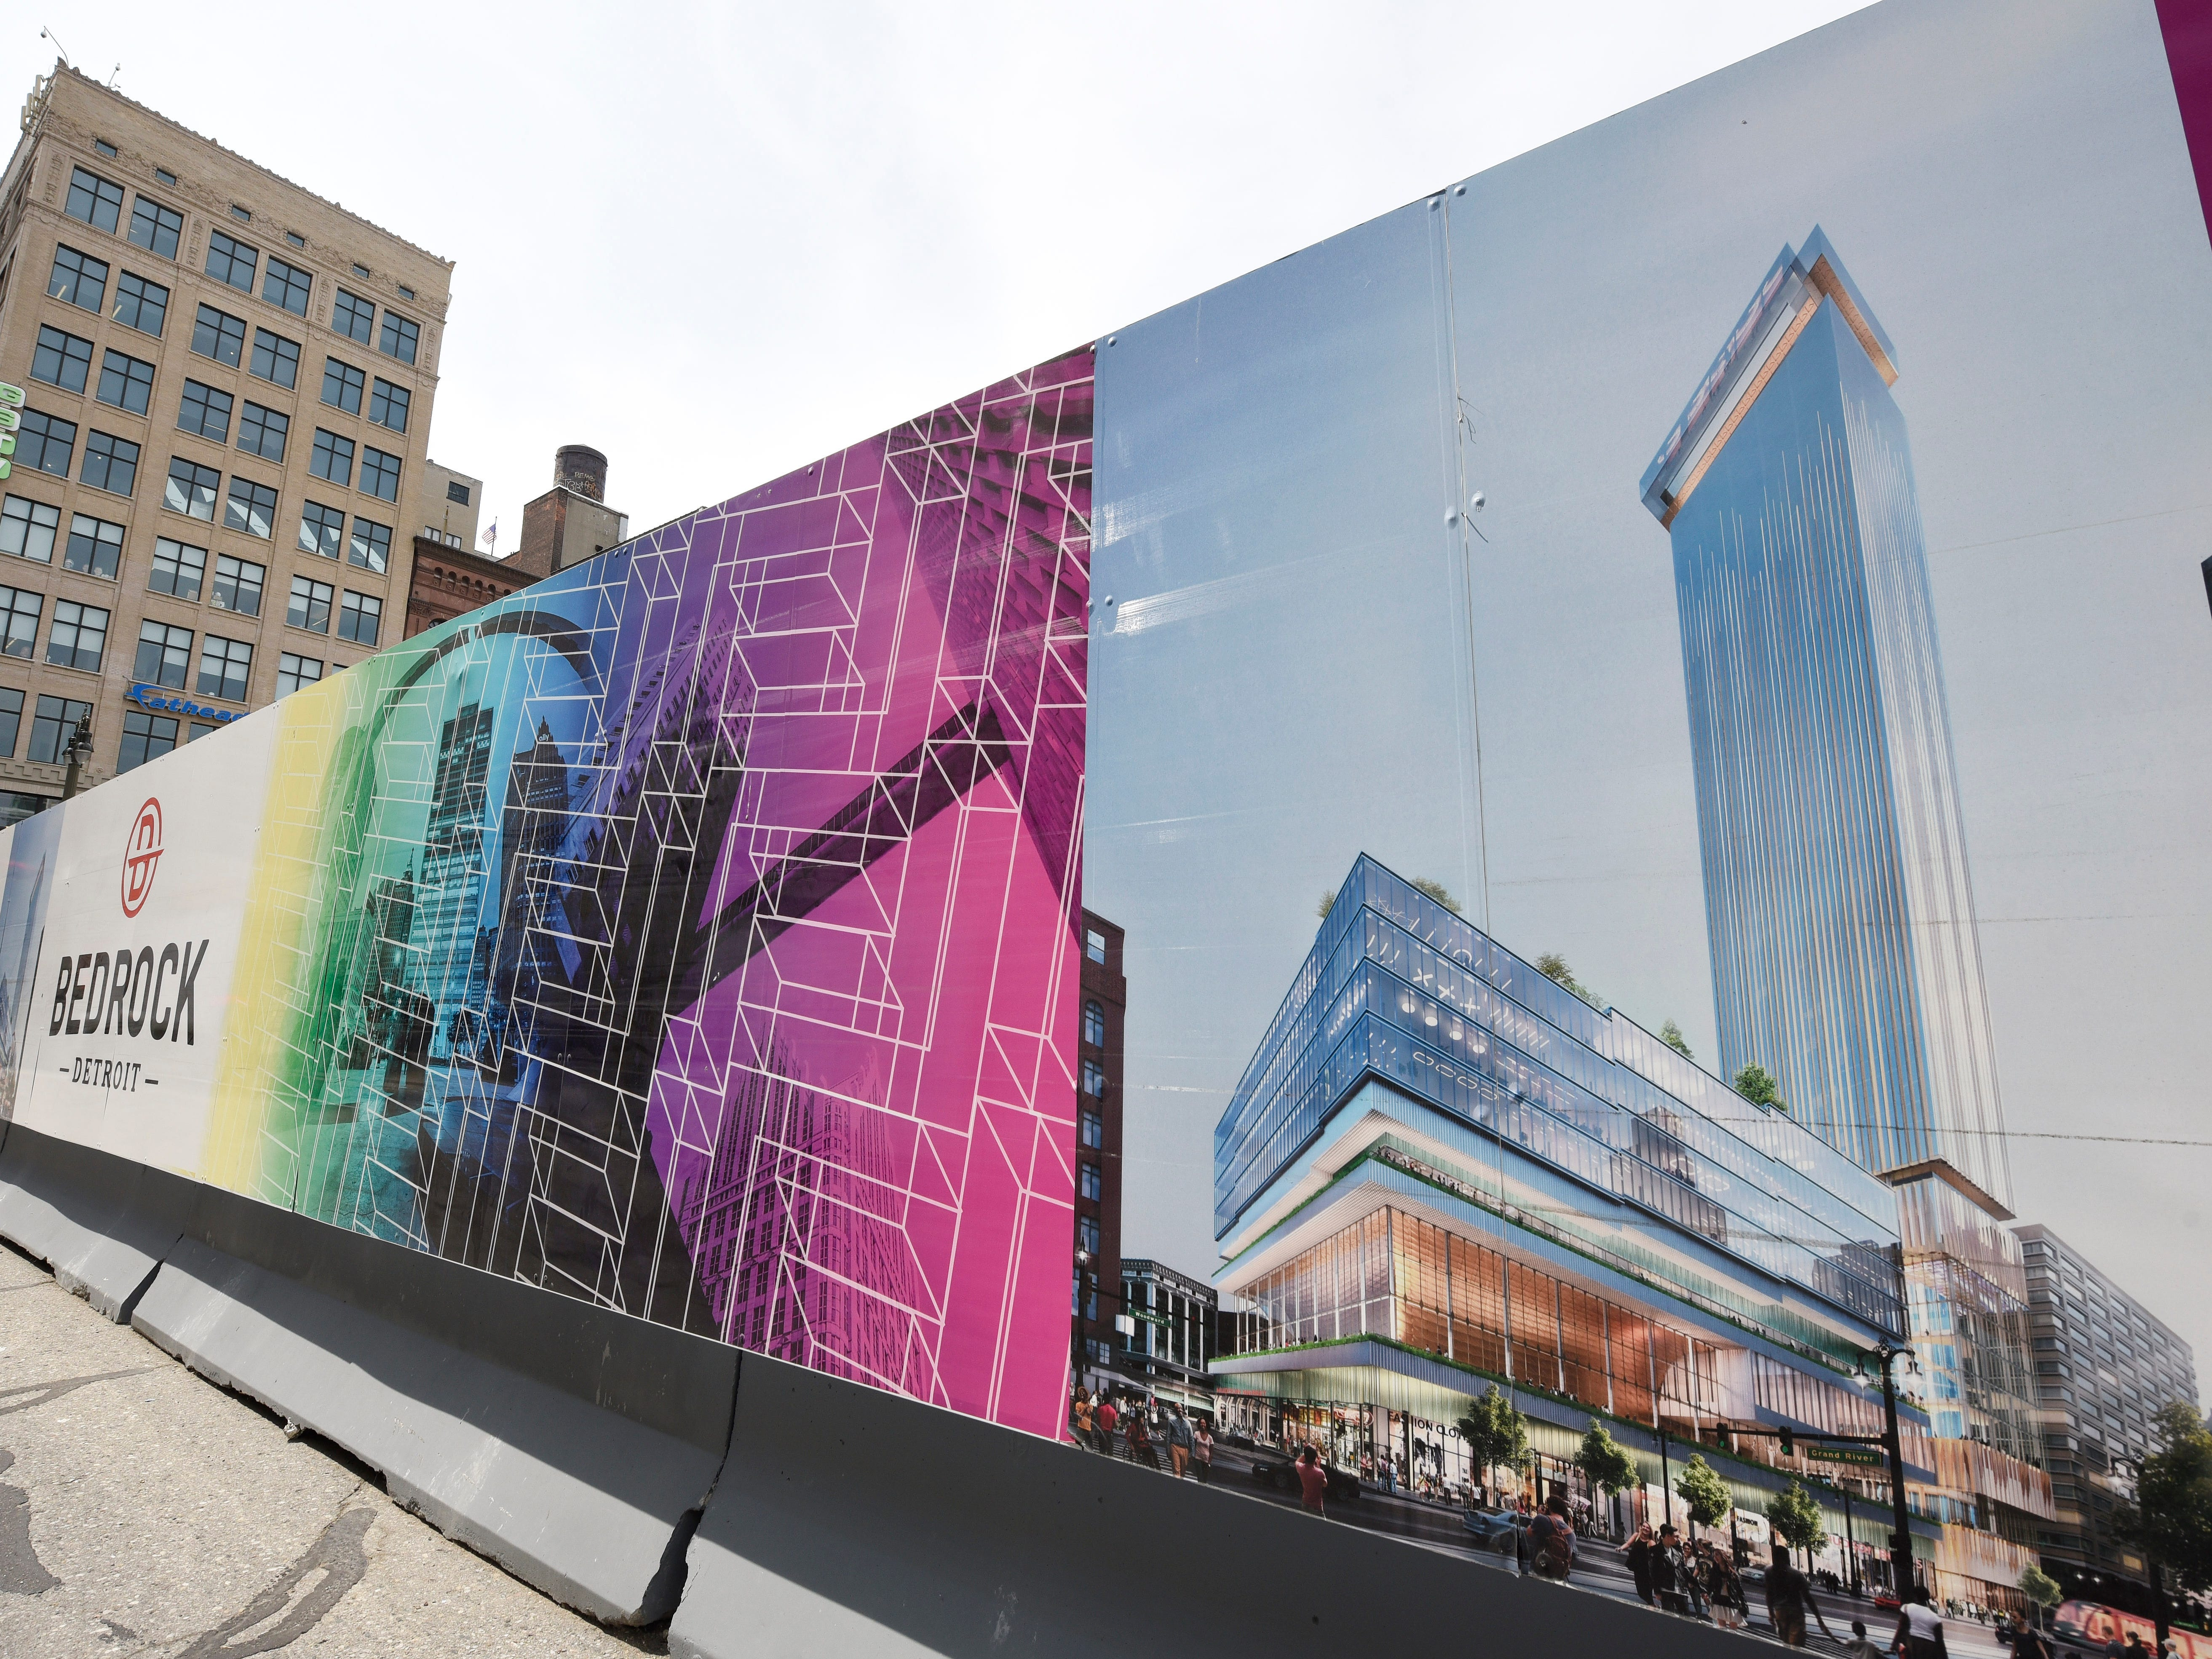 A rendering of the residential tower and mixed use building that will be constructed on the Hudson's site adorns Bedrock's sign at Woodward at Gratiot.